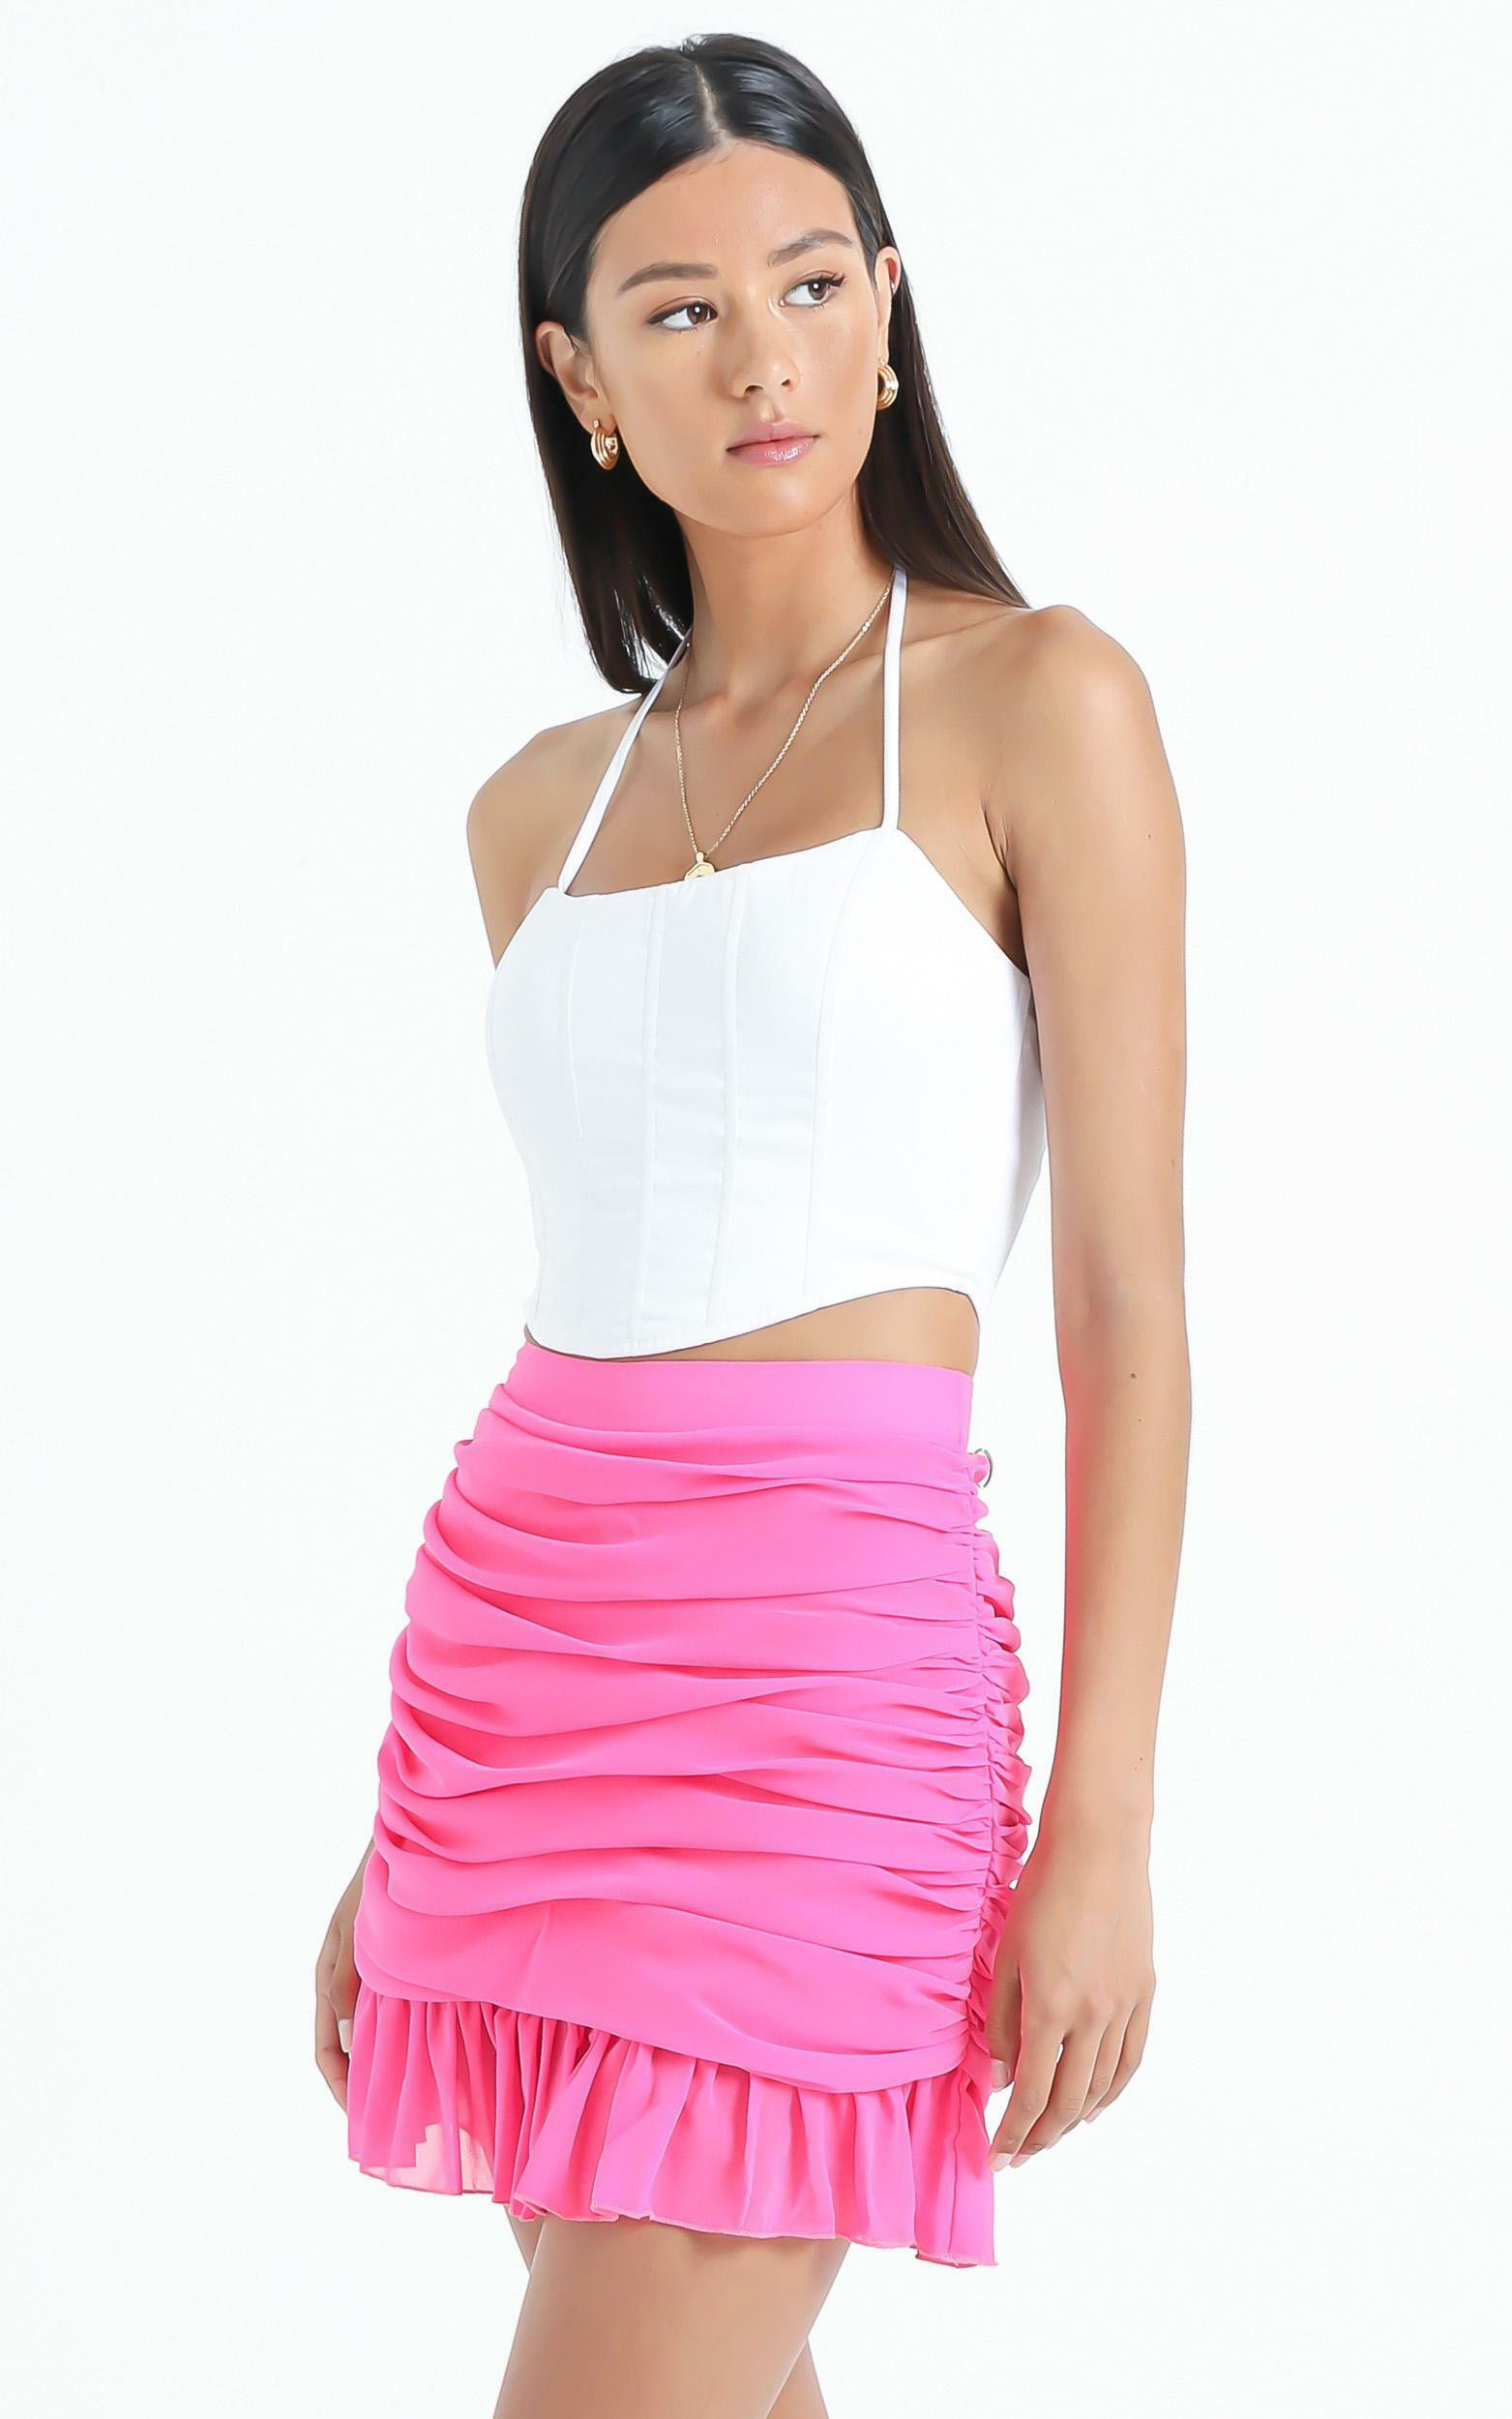 Manon Skirt in Hot Pink - 6 (XS), PNK11, hi-res image number null